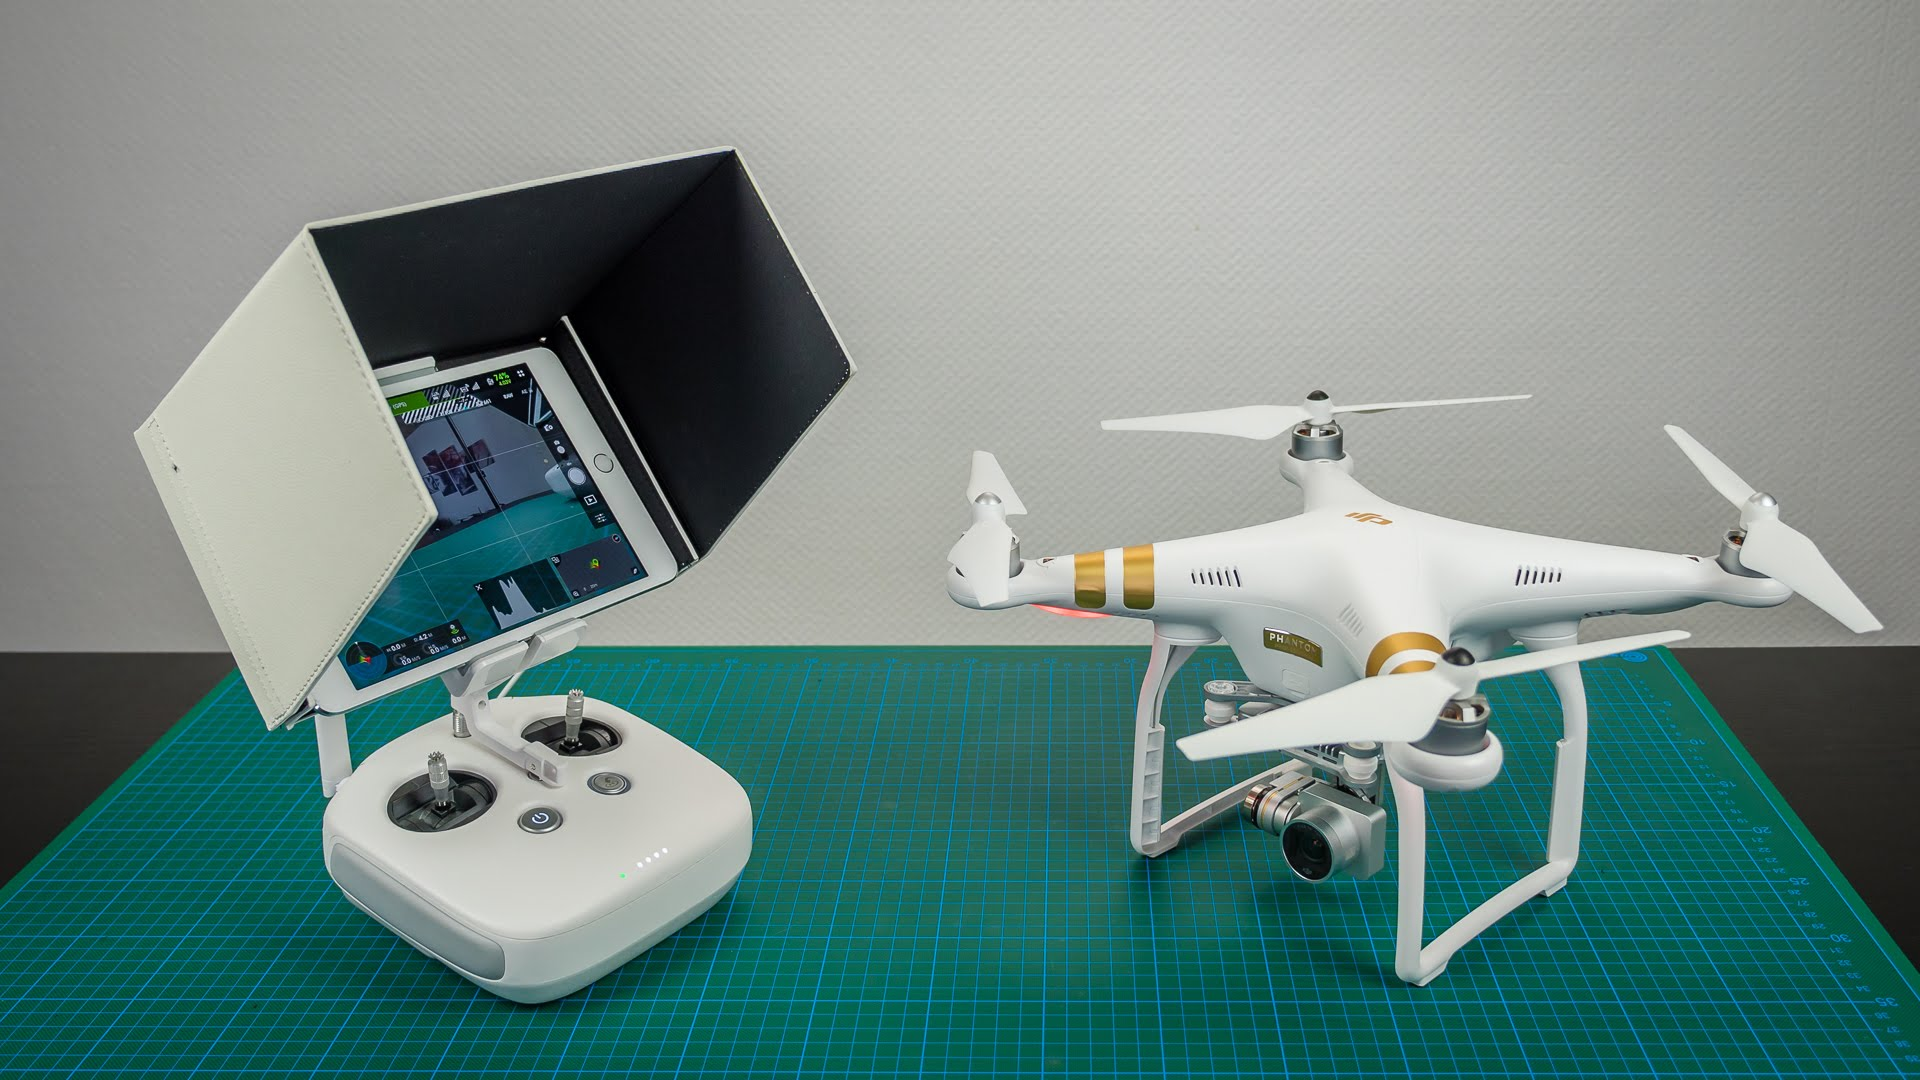 DJI Phantom 3 #29 - Tablet Sonnenschutz, Credit: YouTube